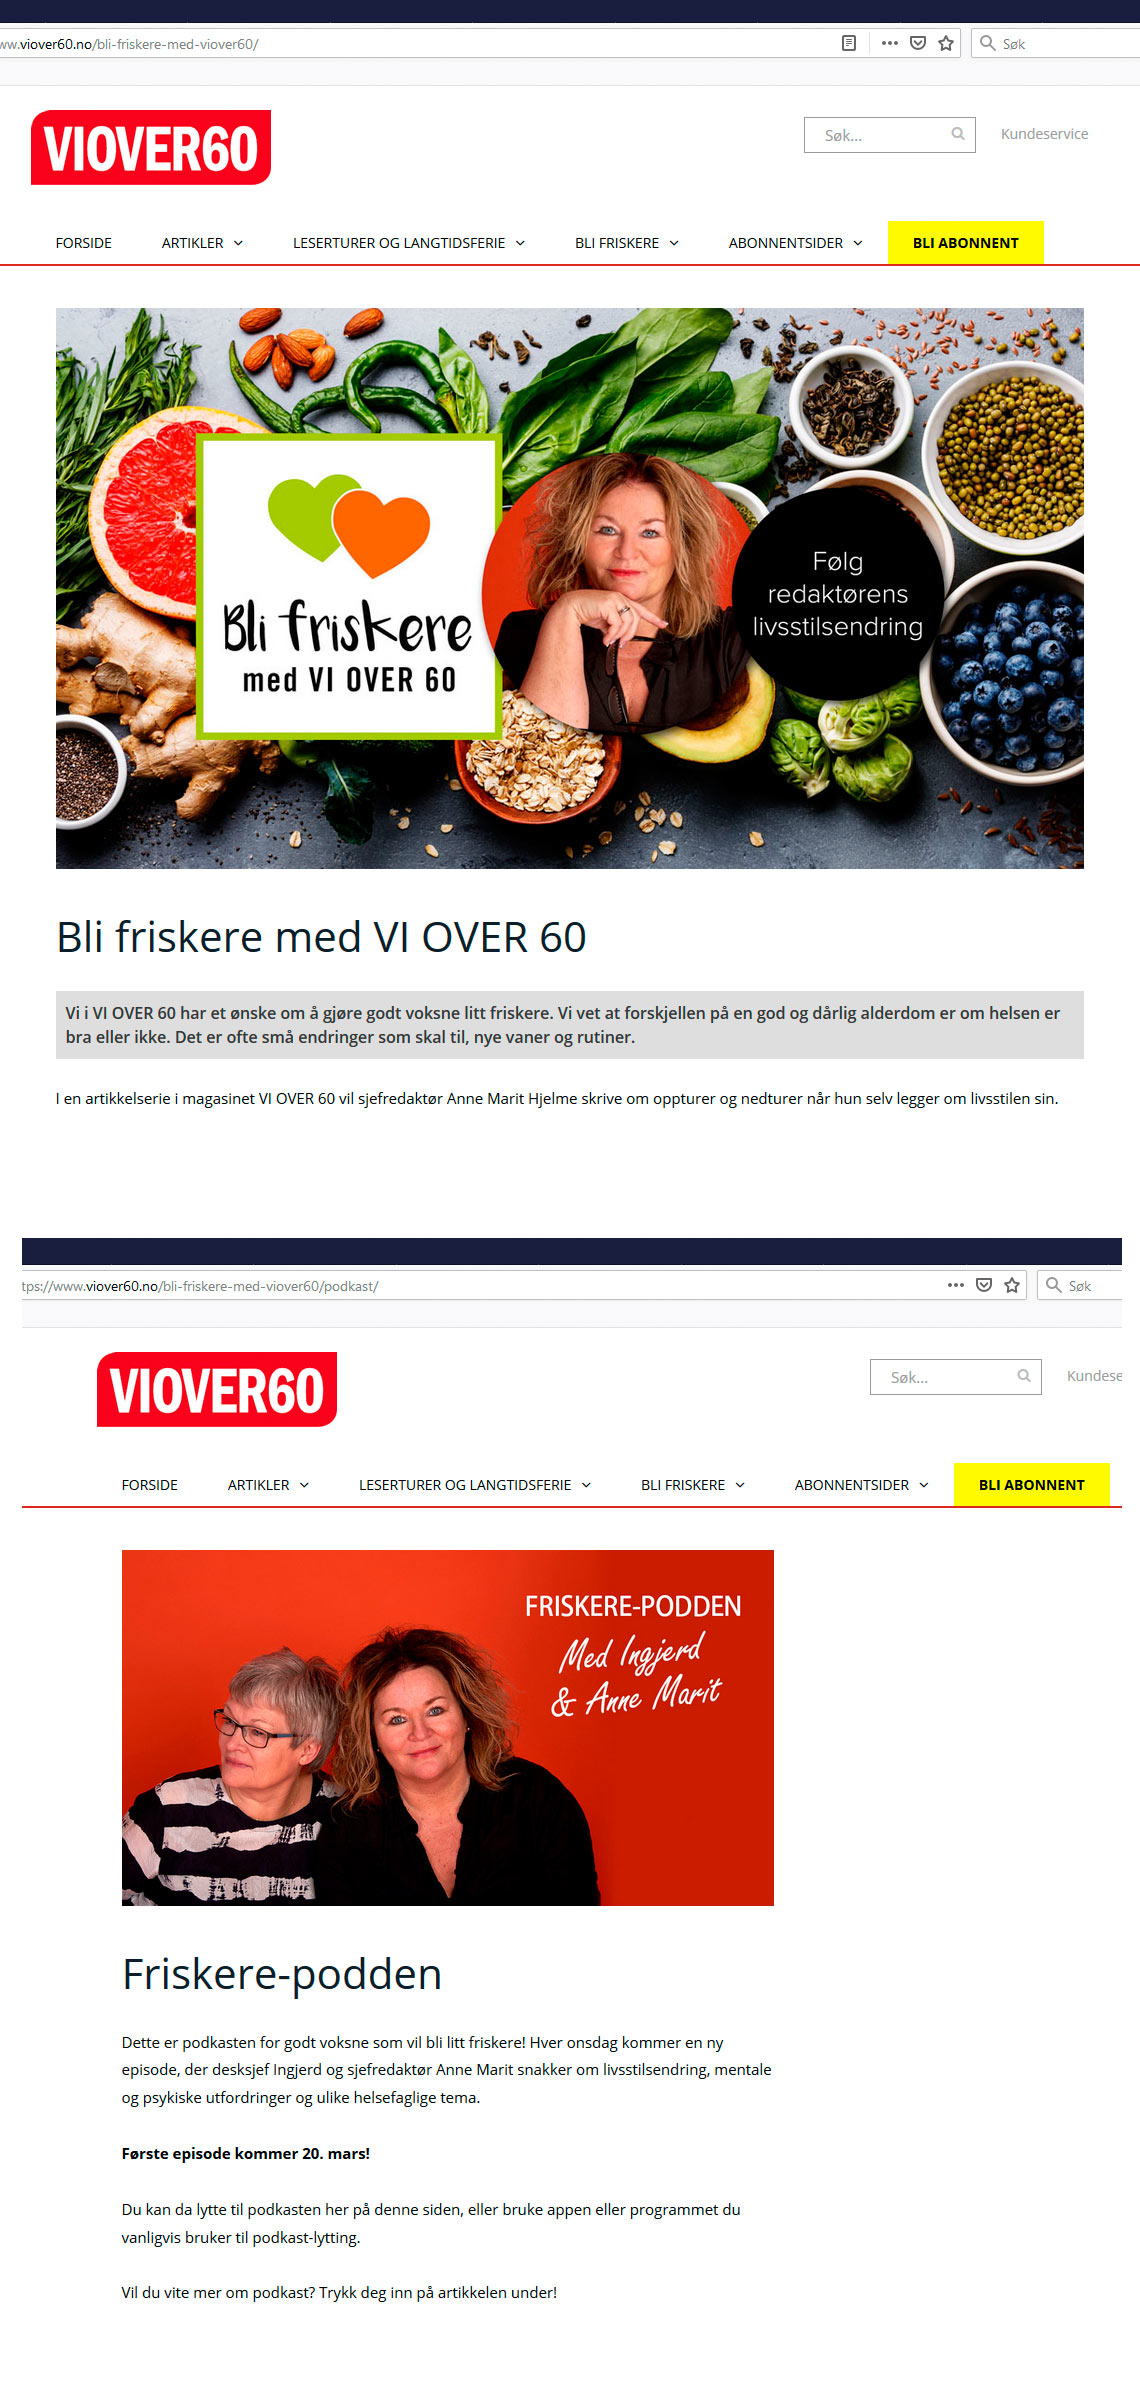 Oppdrag for bladet VI OVER 60